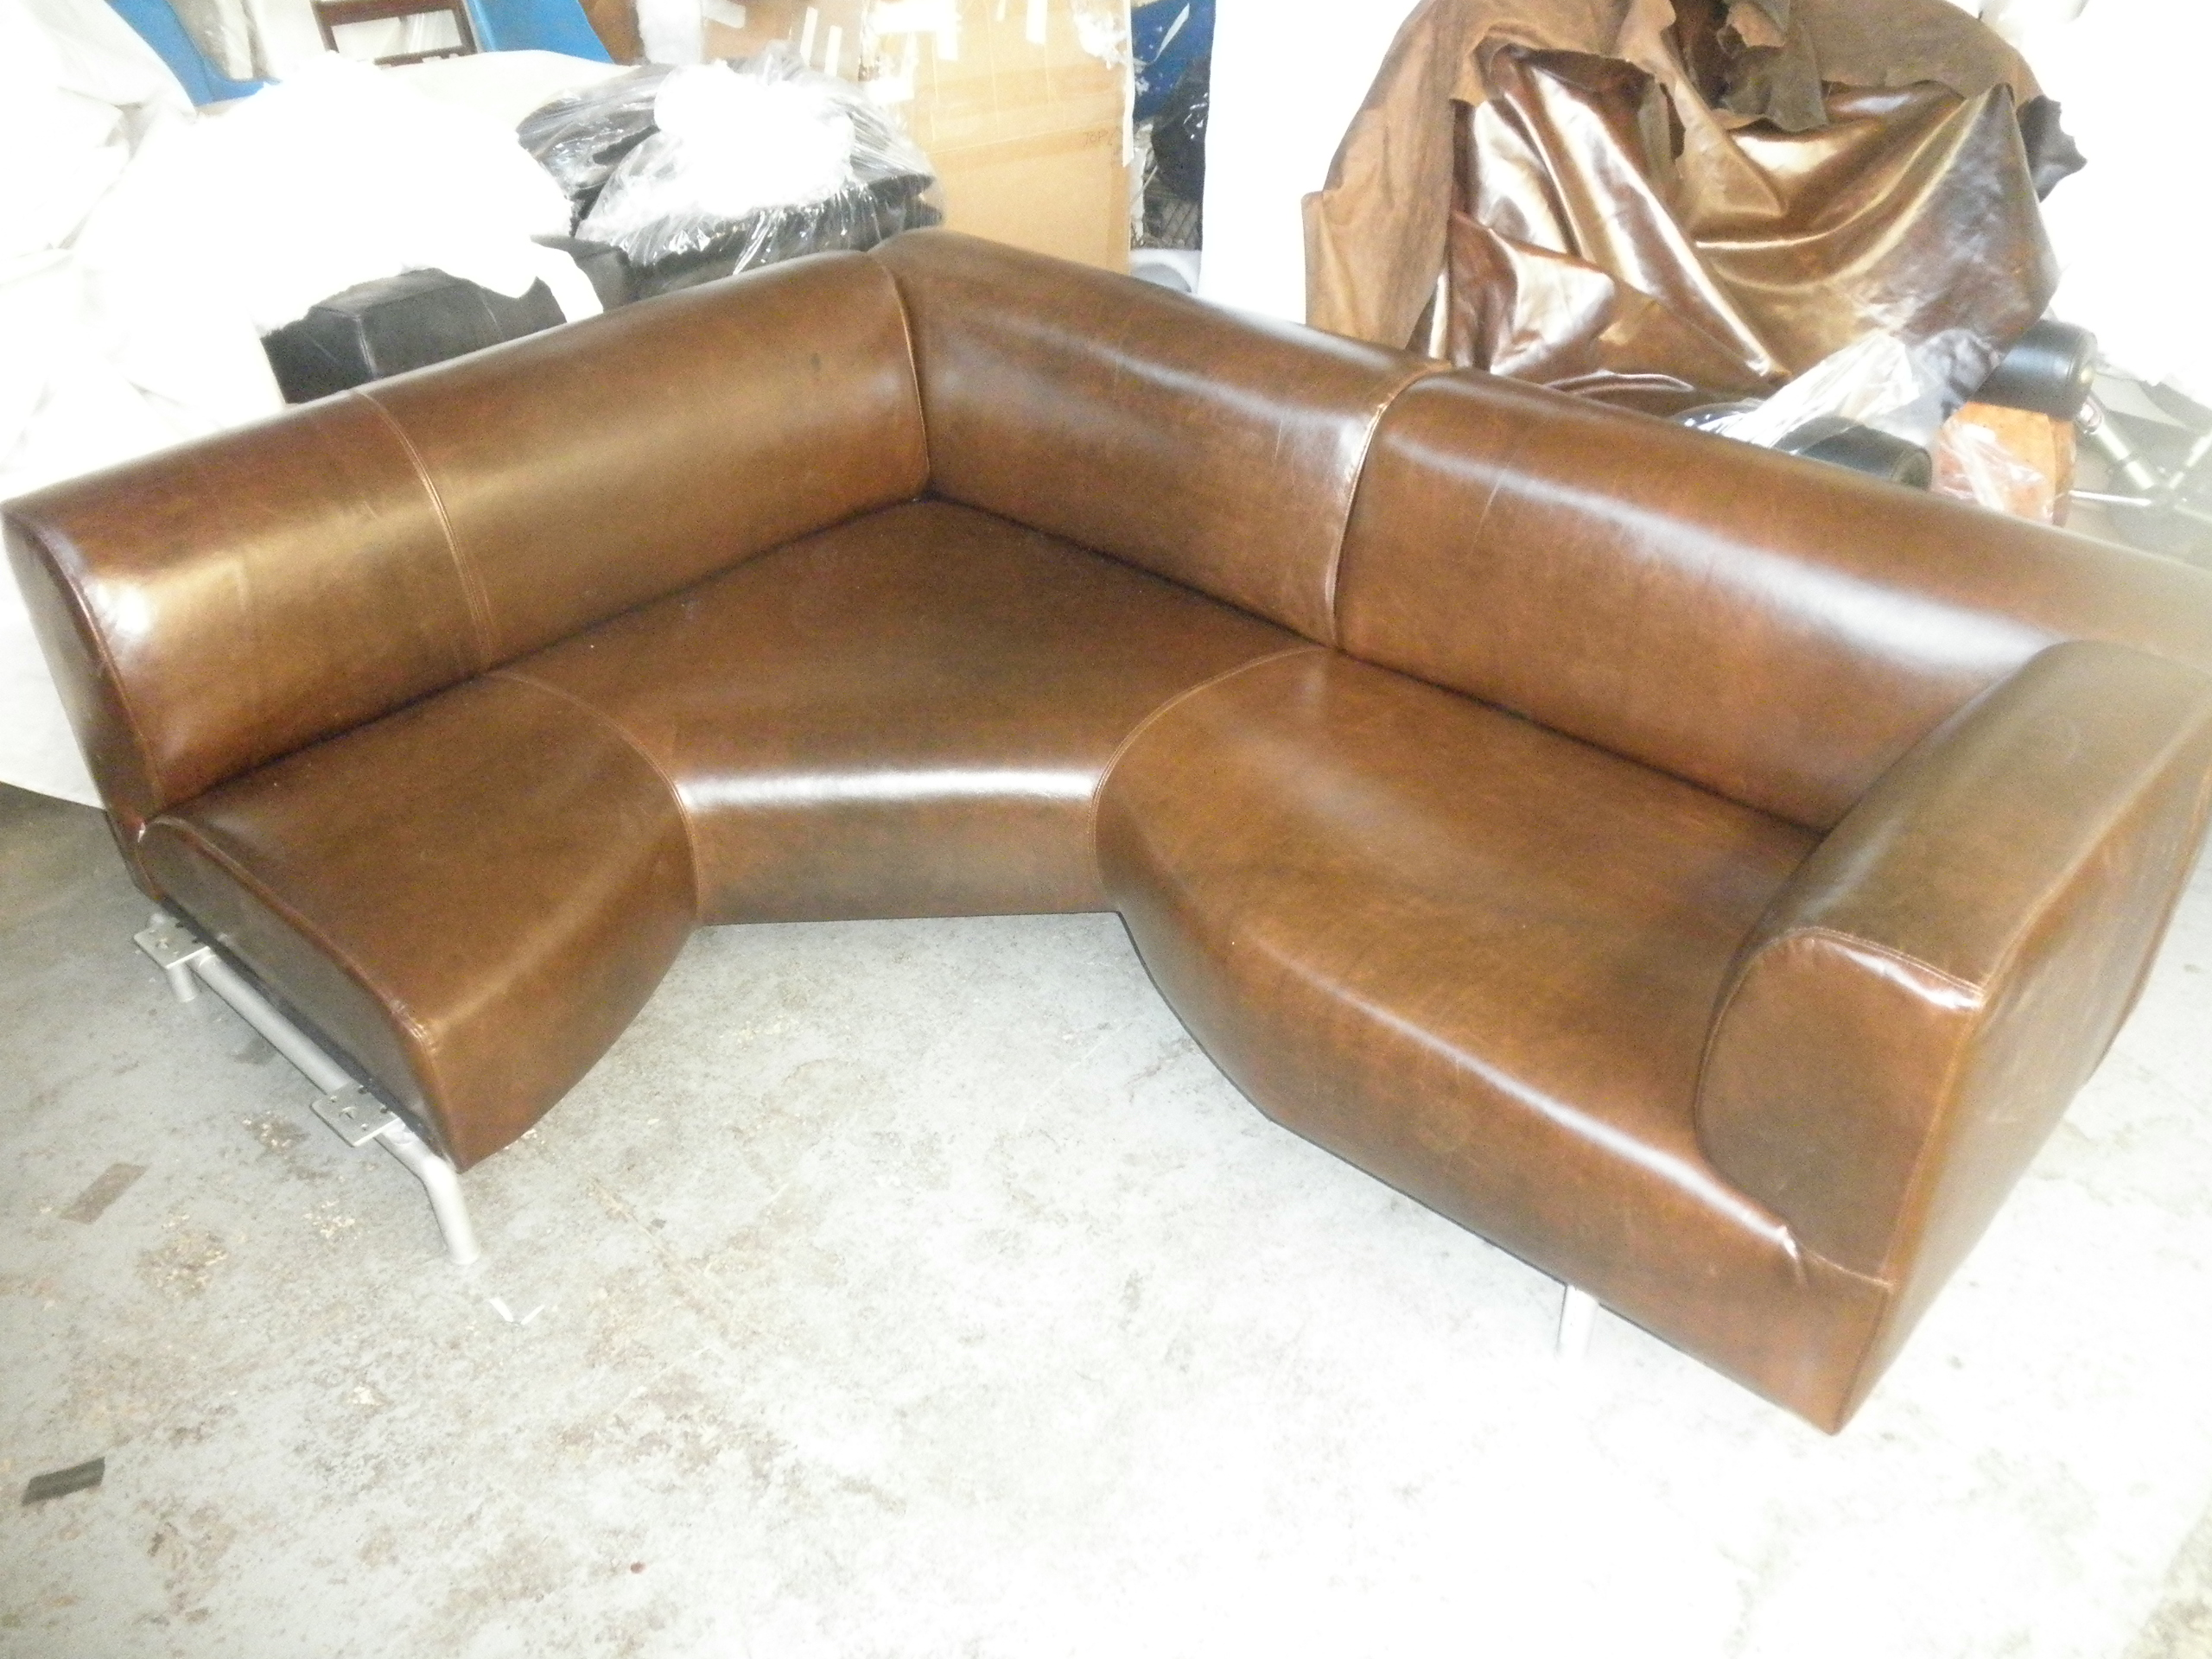 Cassina Corner Unit Reupholstered in Leather, with new Mahogany Back BEFORE